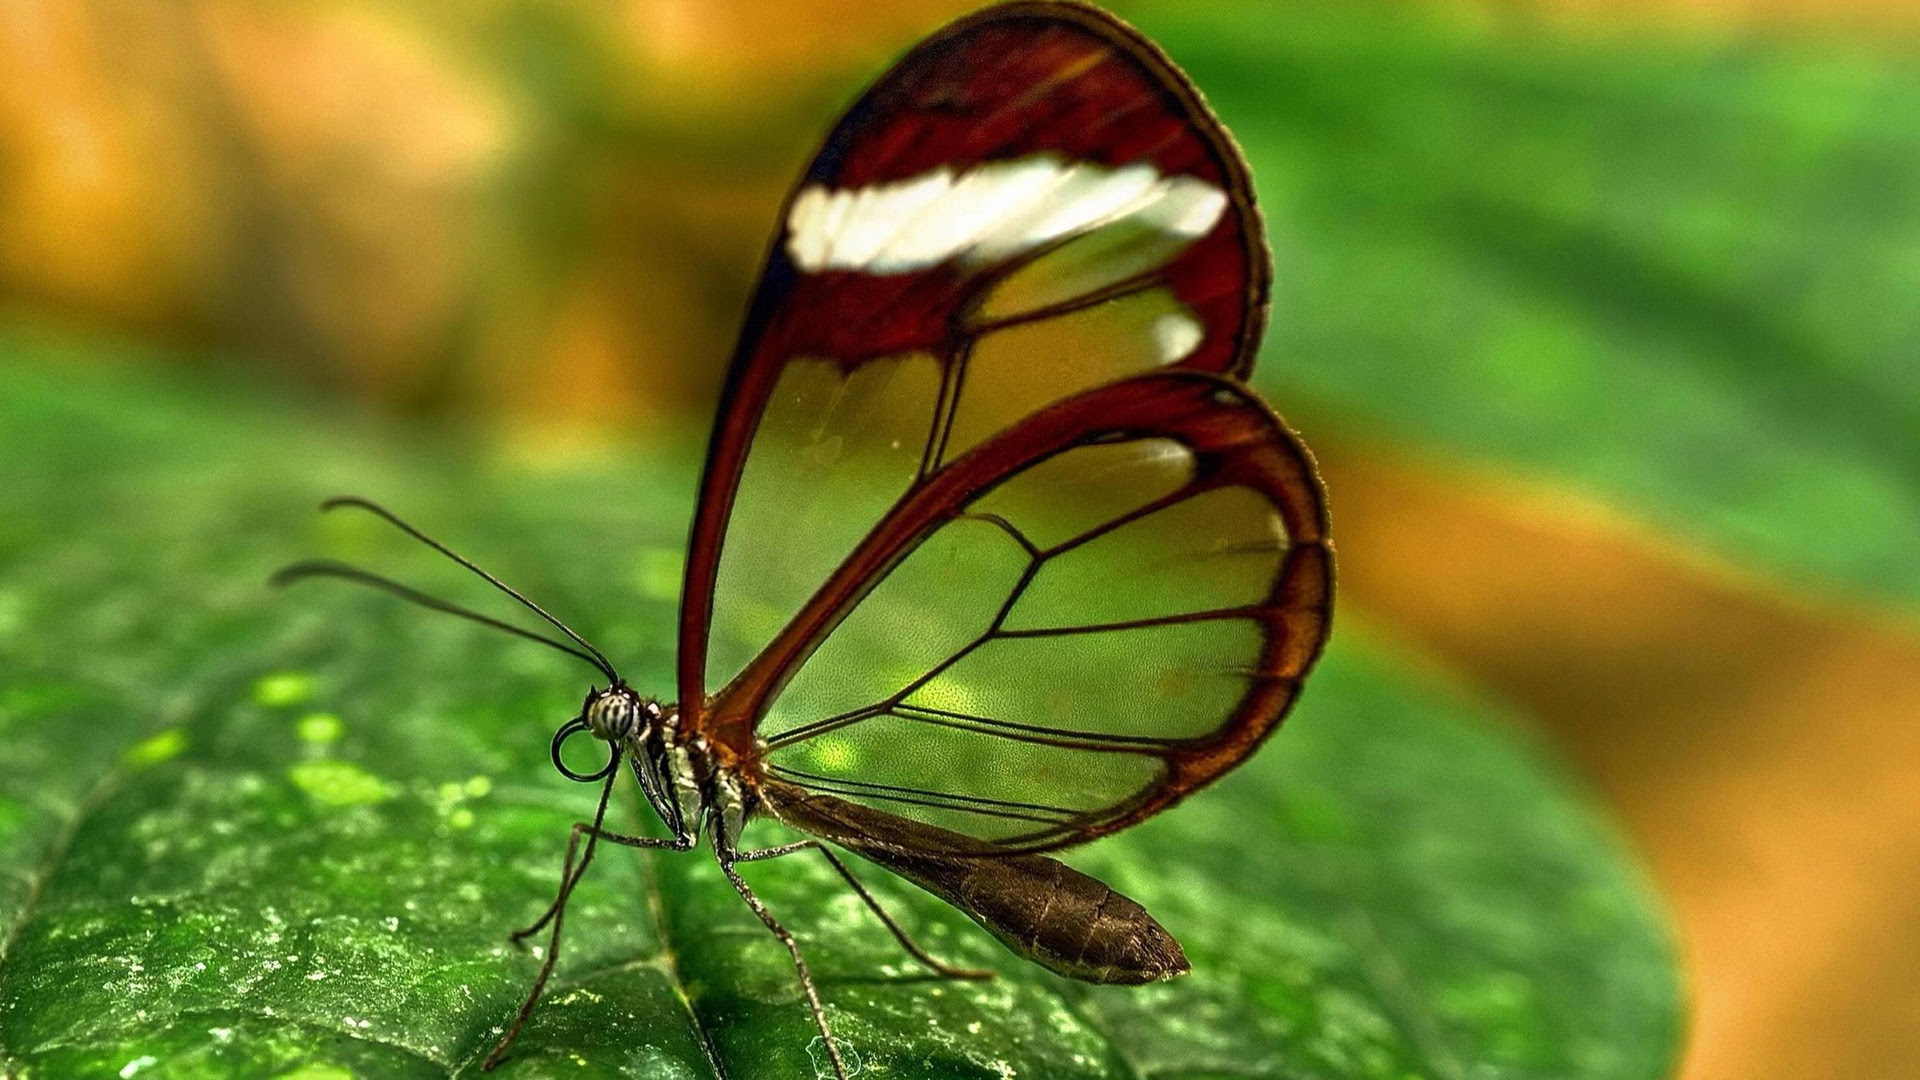 Free Download Picture of Glasswing Butterfly for Wallpaper ...